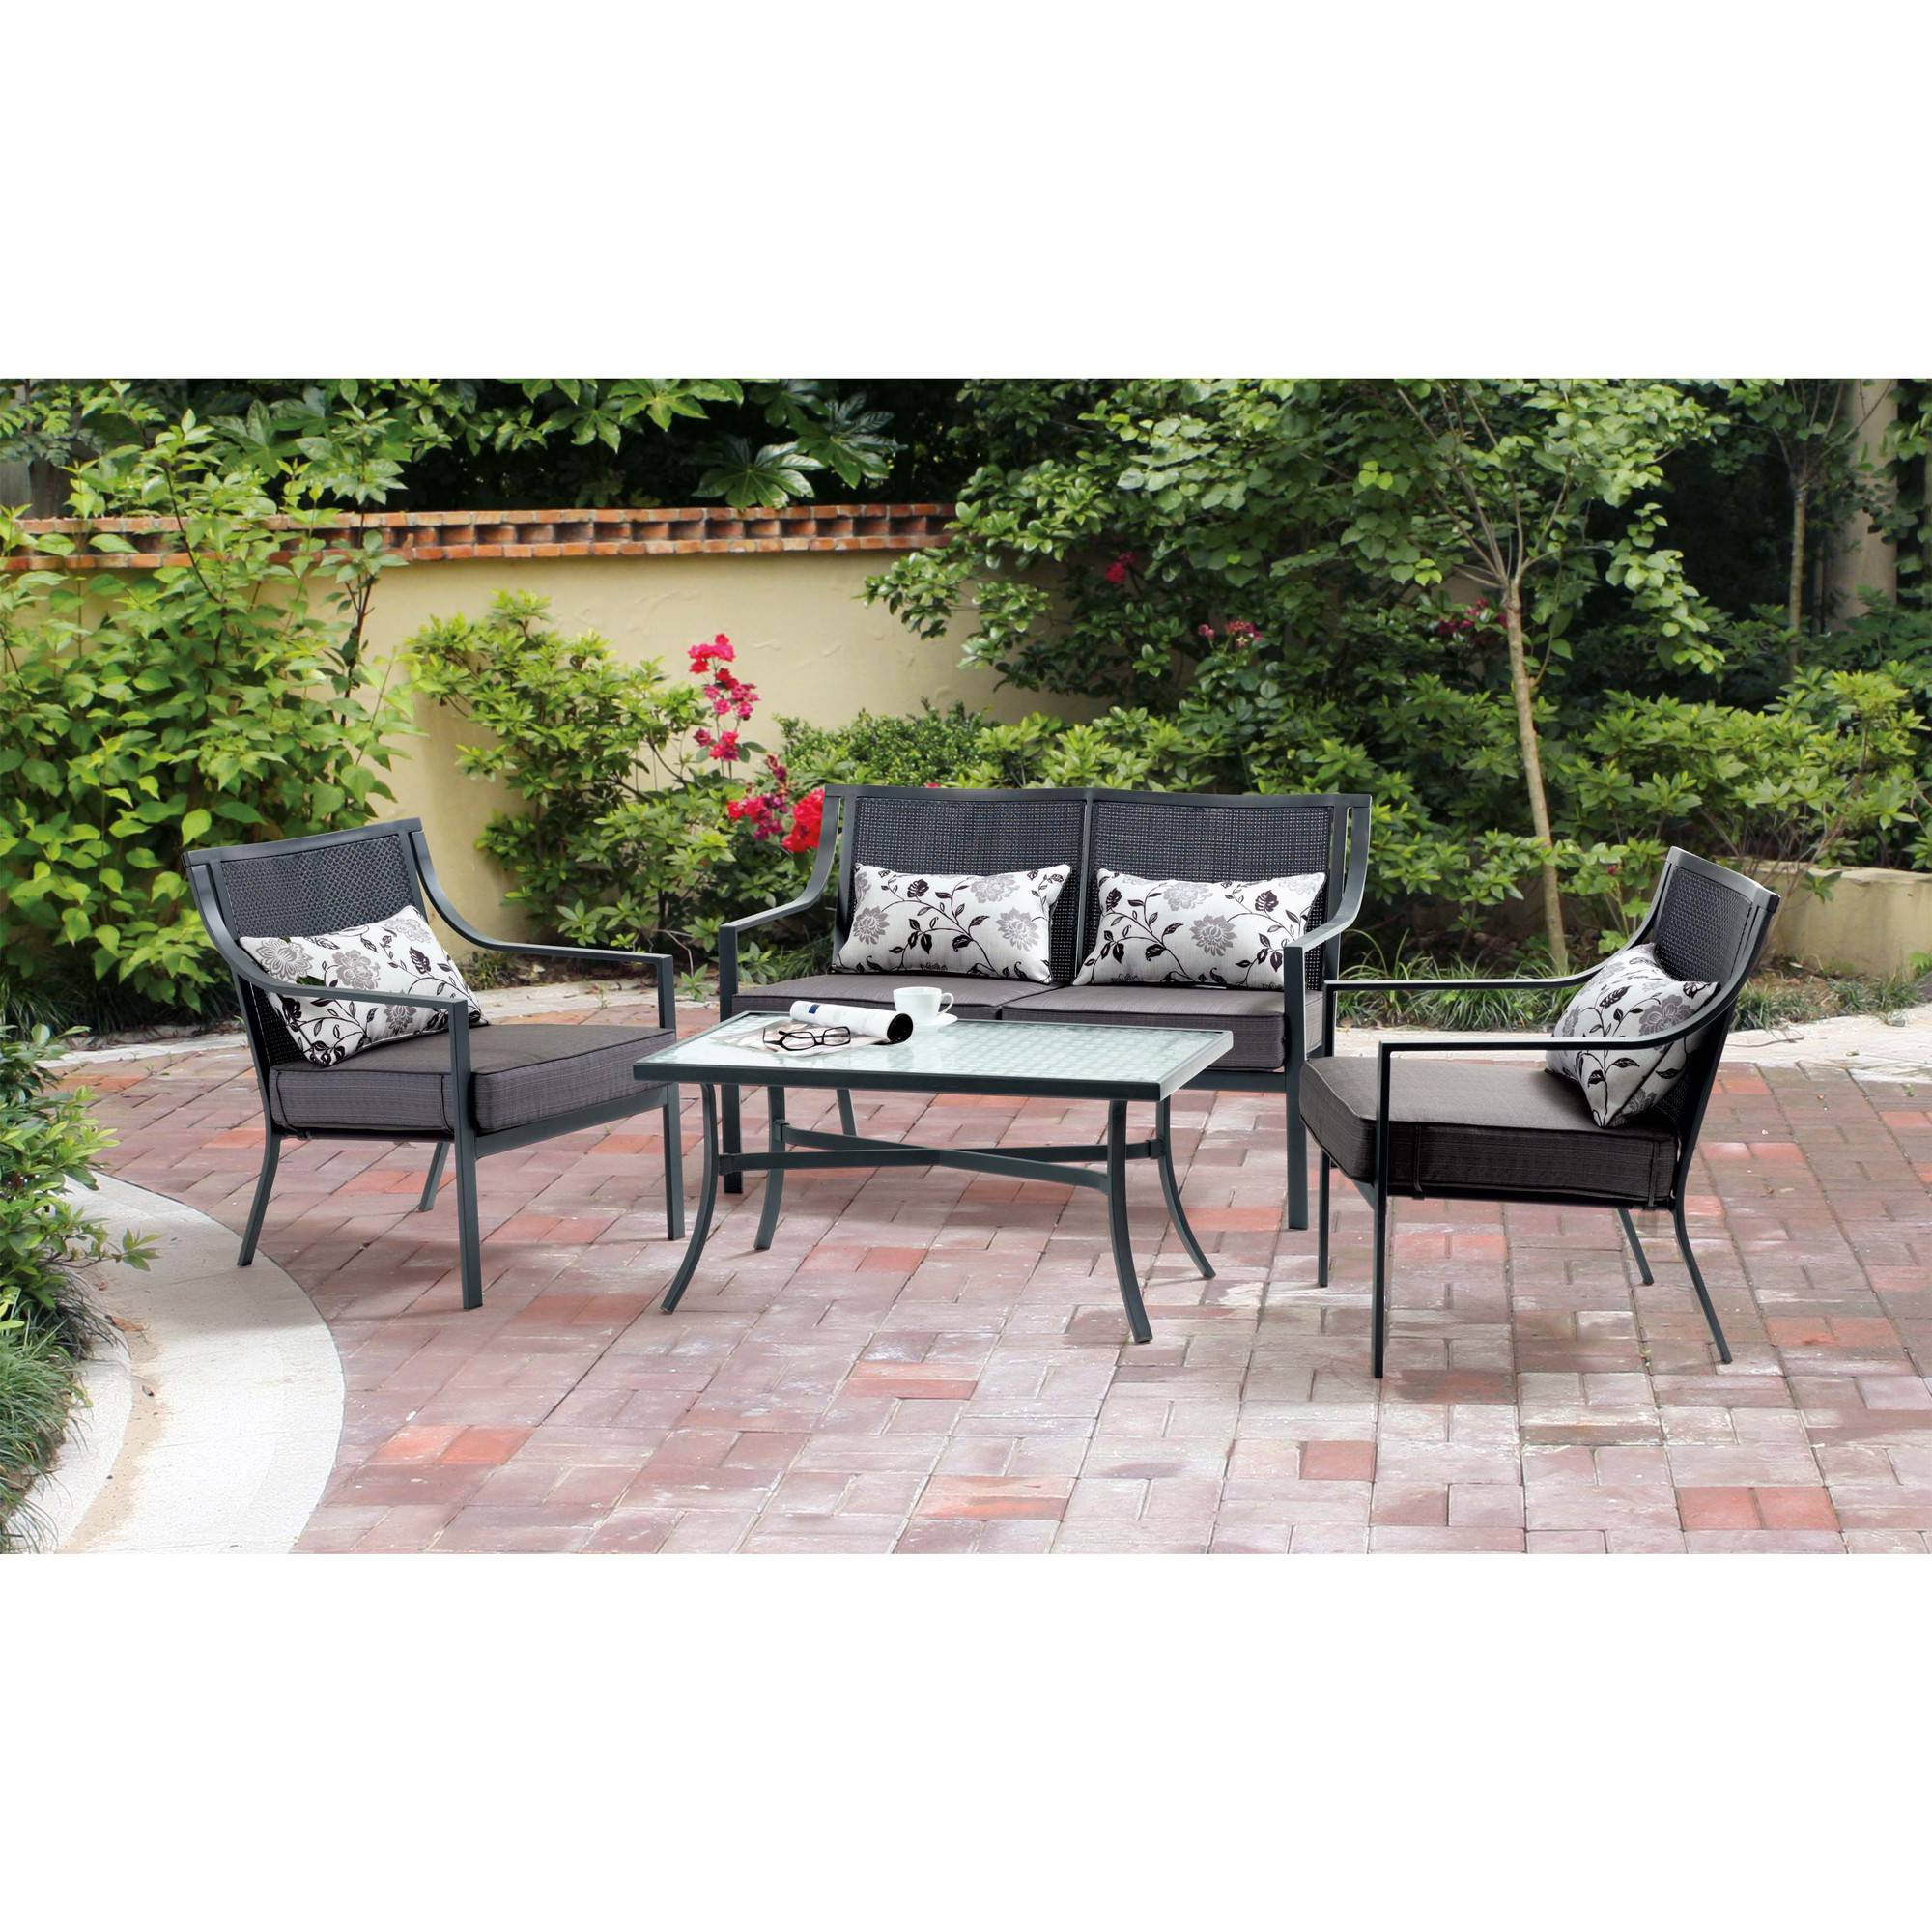 Mainstays Alexandra Square 4 Piece Patio Conversation Set Grey With Leaves Seats 4